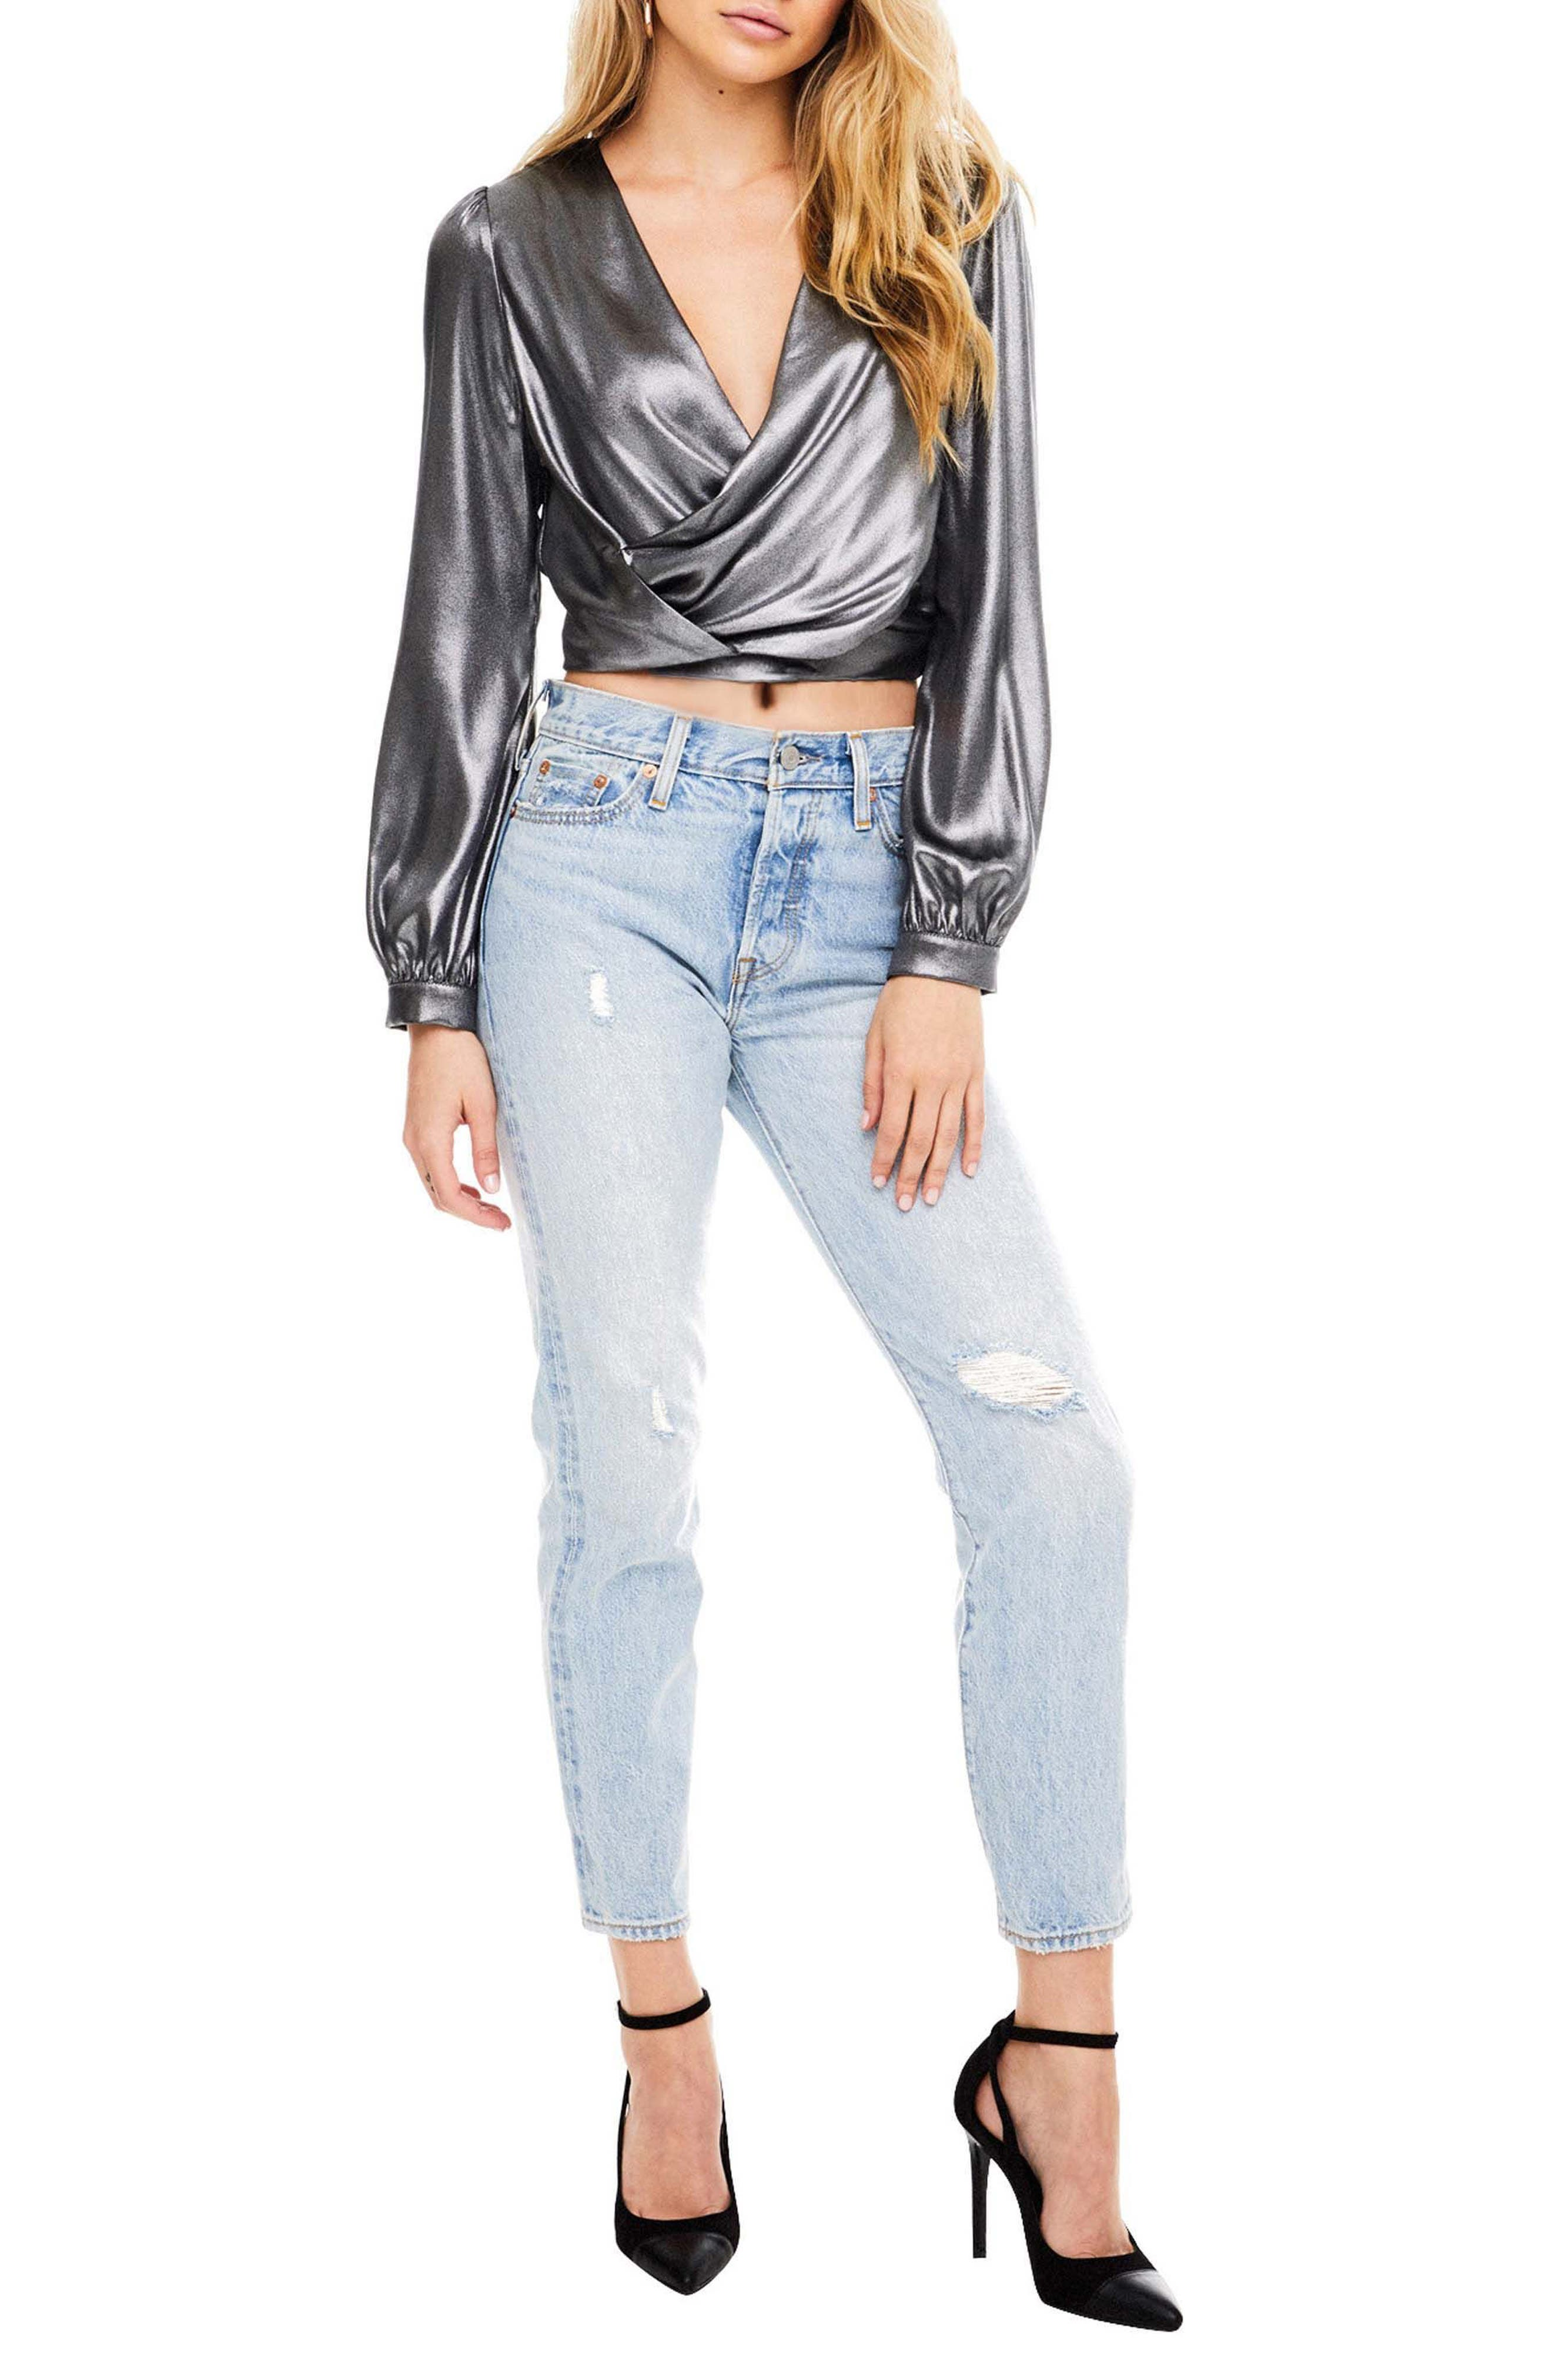 Alternate Image 1 Selected - ASTR the Label Langley Surplice Crop Top